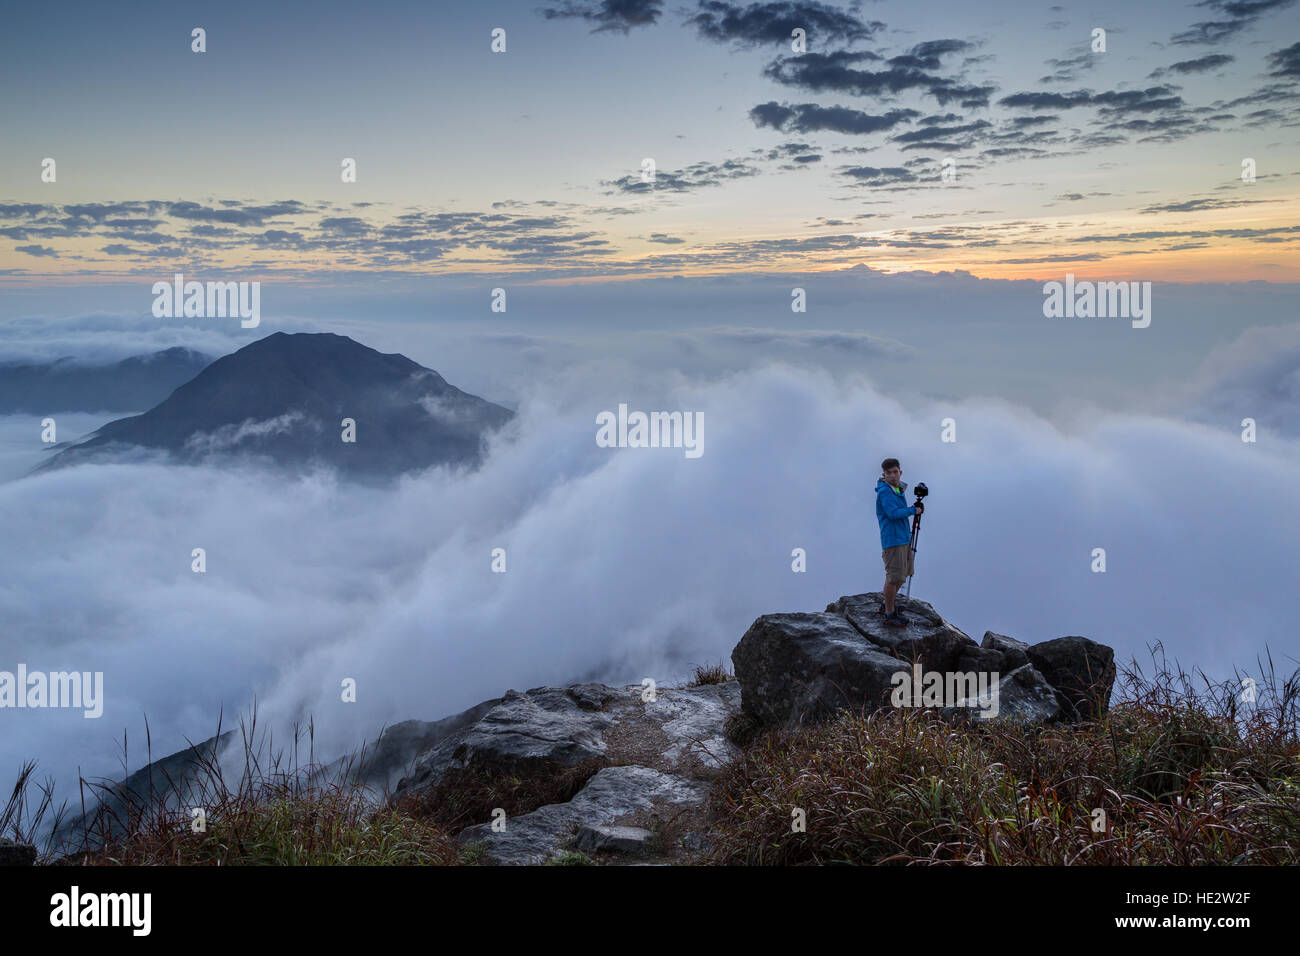 View of clouds and a man with a camera and tripod standing on a rock at the Lantau Peak on Lantau Island in Hong - Stock Image